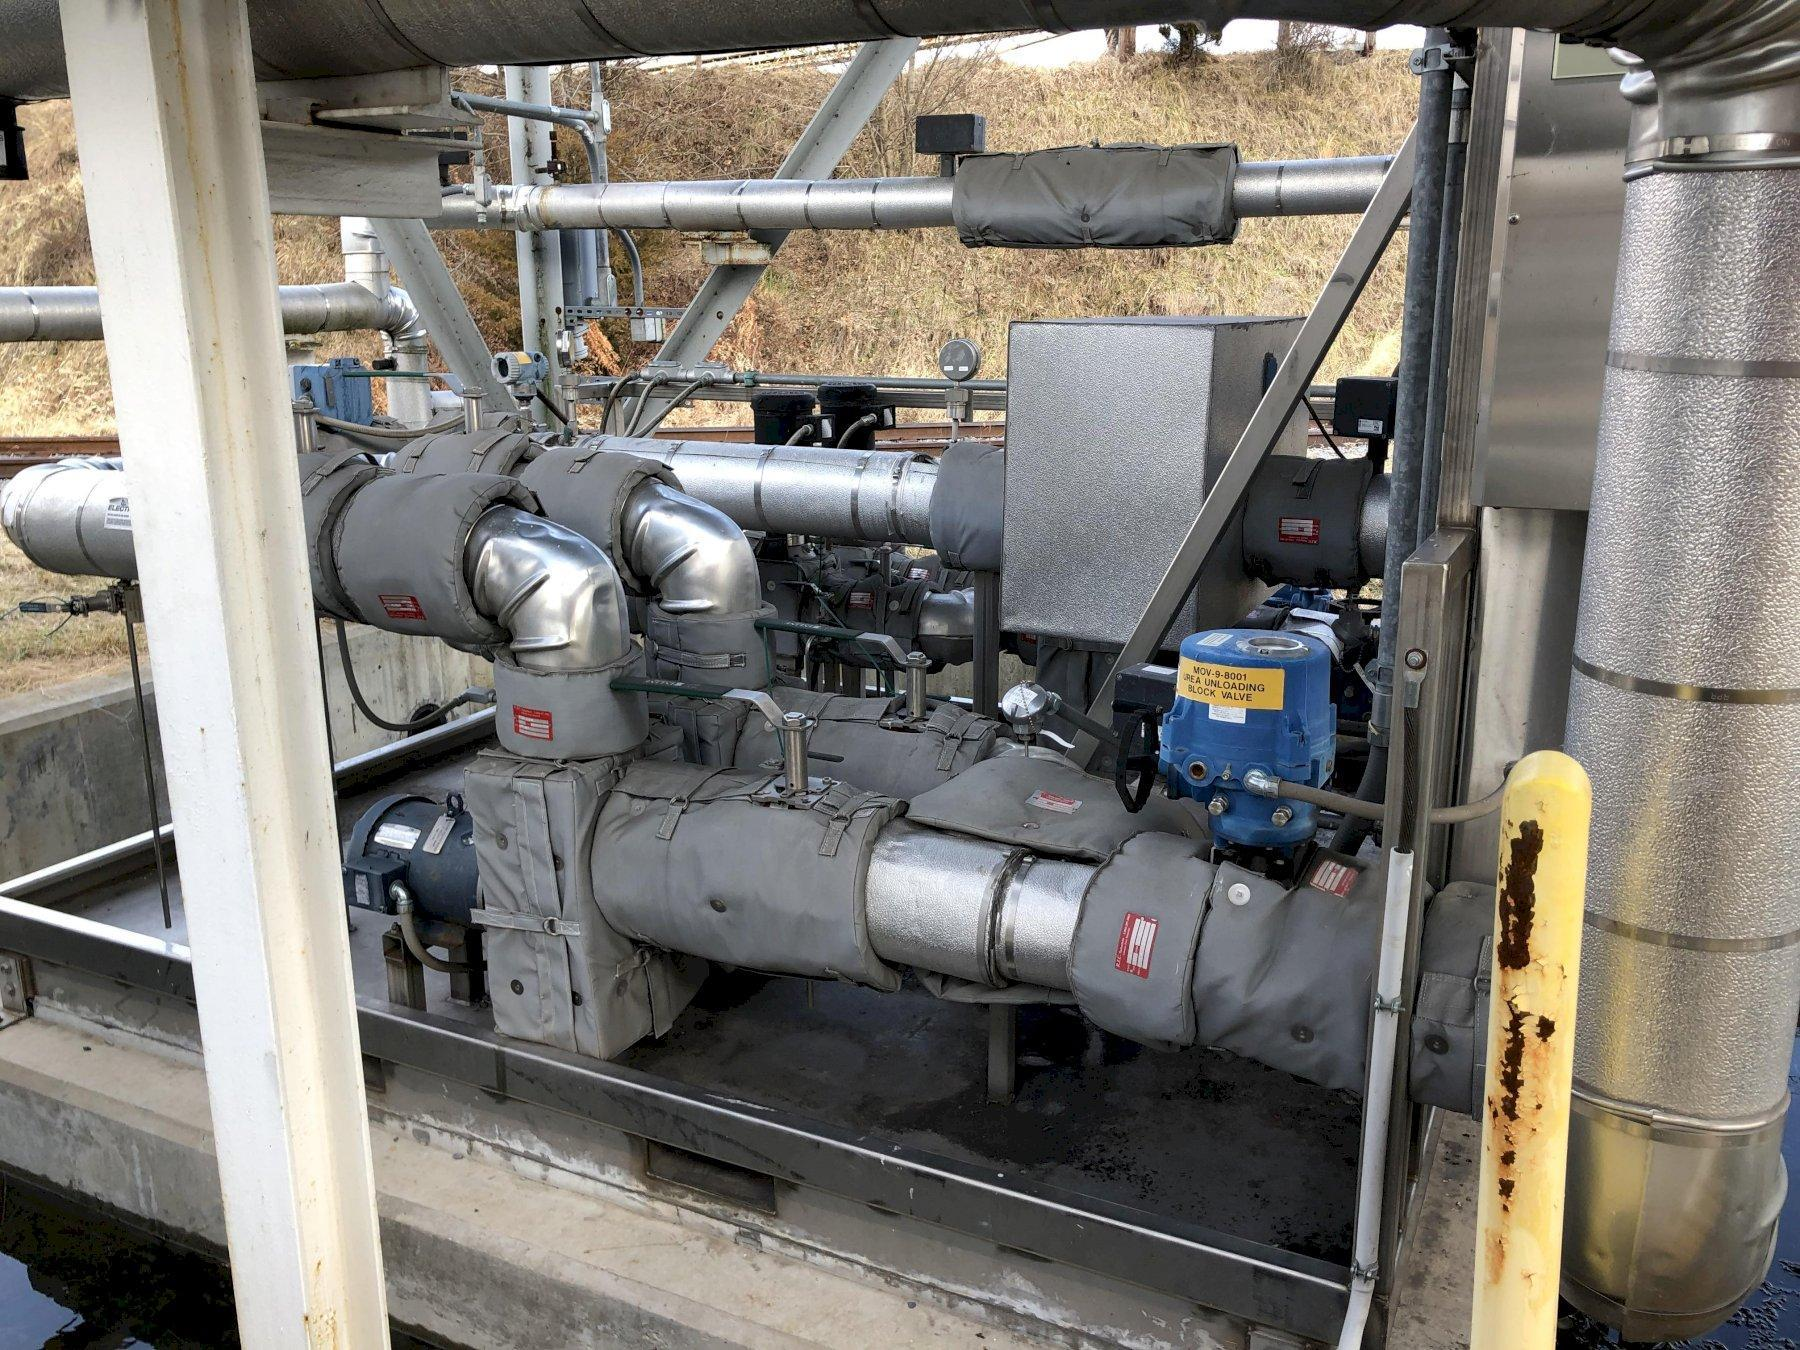 Urea system with 2- #1 and #2 pump buildings each with 2- 10hp pumps and motors with stainless steel enclosures, heated piping, 2- urea holding tanks, sdm controls, fuel tech sdm drive system with 2- 7.5 hp urea pumps, 2- 7.5 hp dilution pumps and rr unloading station